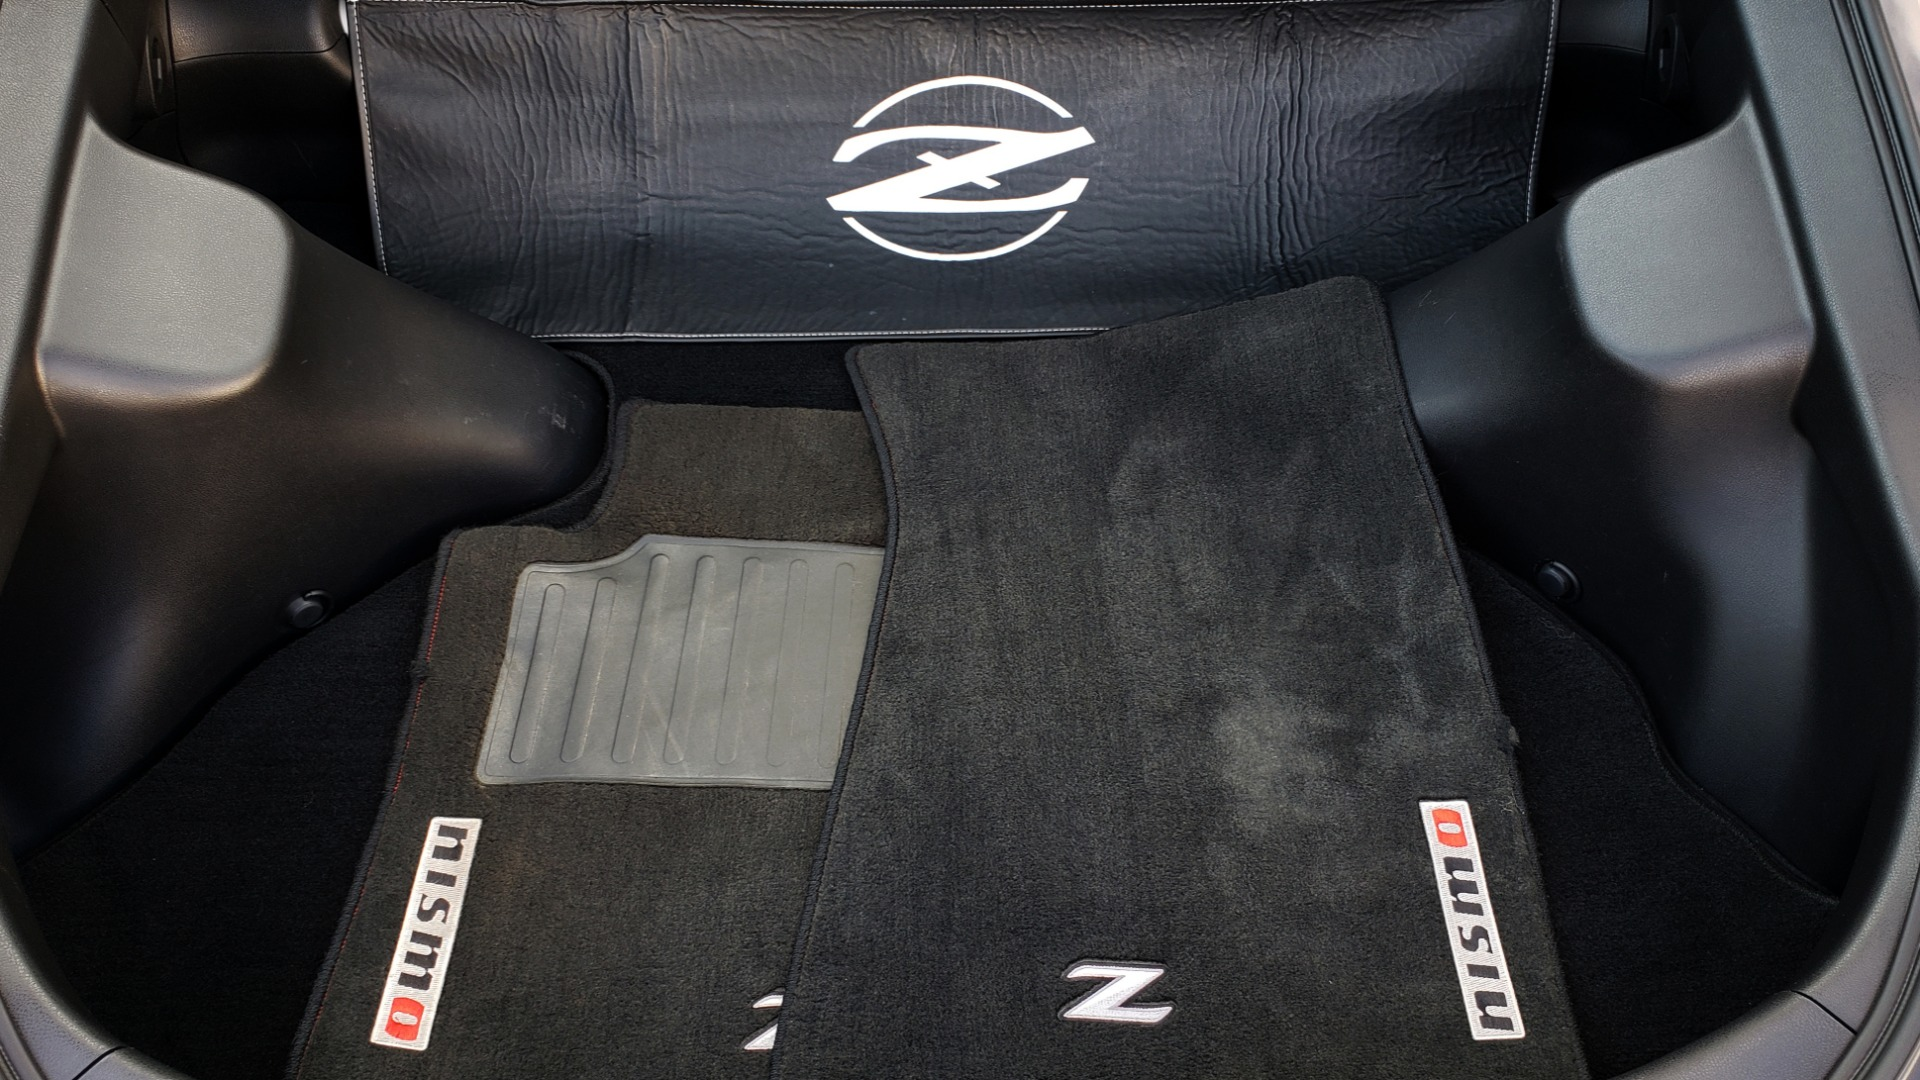 Used 2014 Nissan 370Z NISMO / 6-SPD MAN / BOSE / 6-DISC CHANGER / NISMO MATS / REARVIEW for sale Sold at Formula Imports in Charlotte NC 28227 69